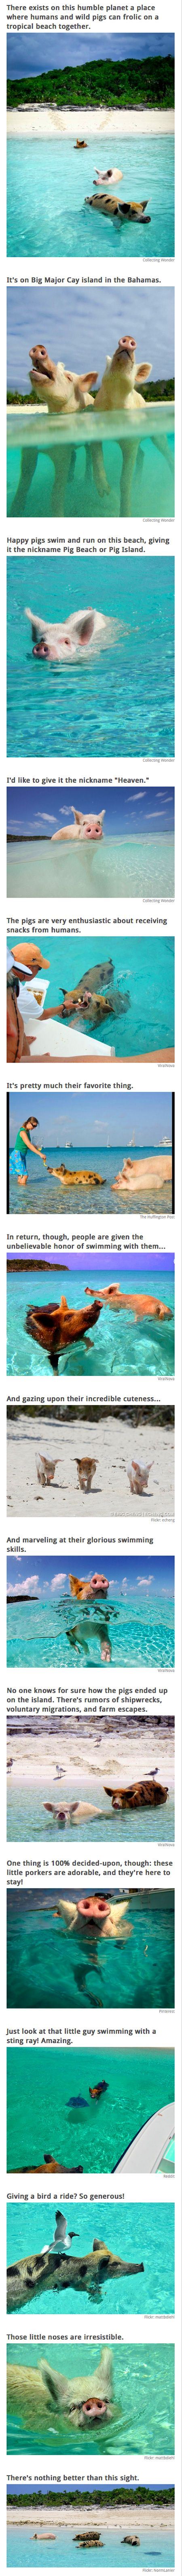 There exists on this humble planet a place where humans and wild pigs can frolic on a tropical beach together. It's on Big Major Cay island in the Bahamas.